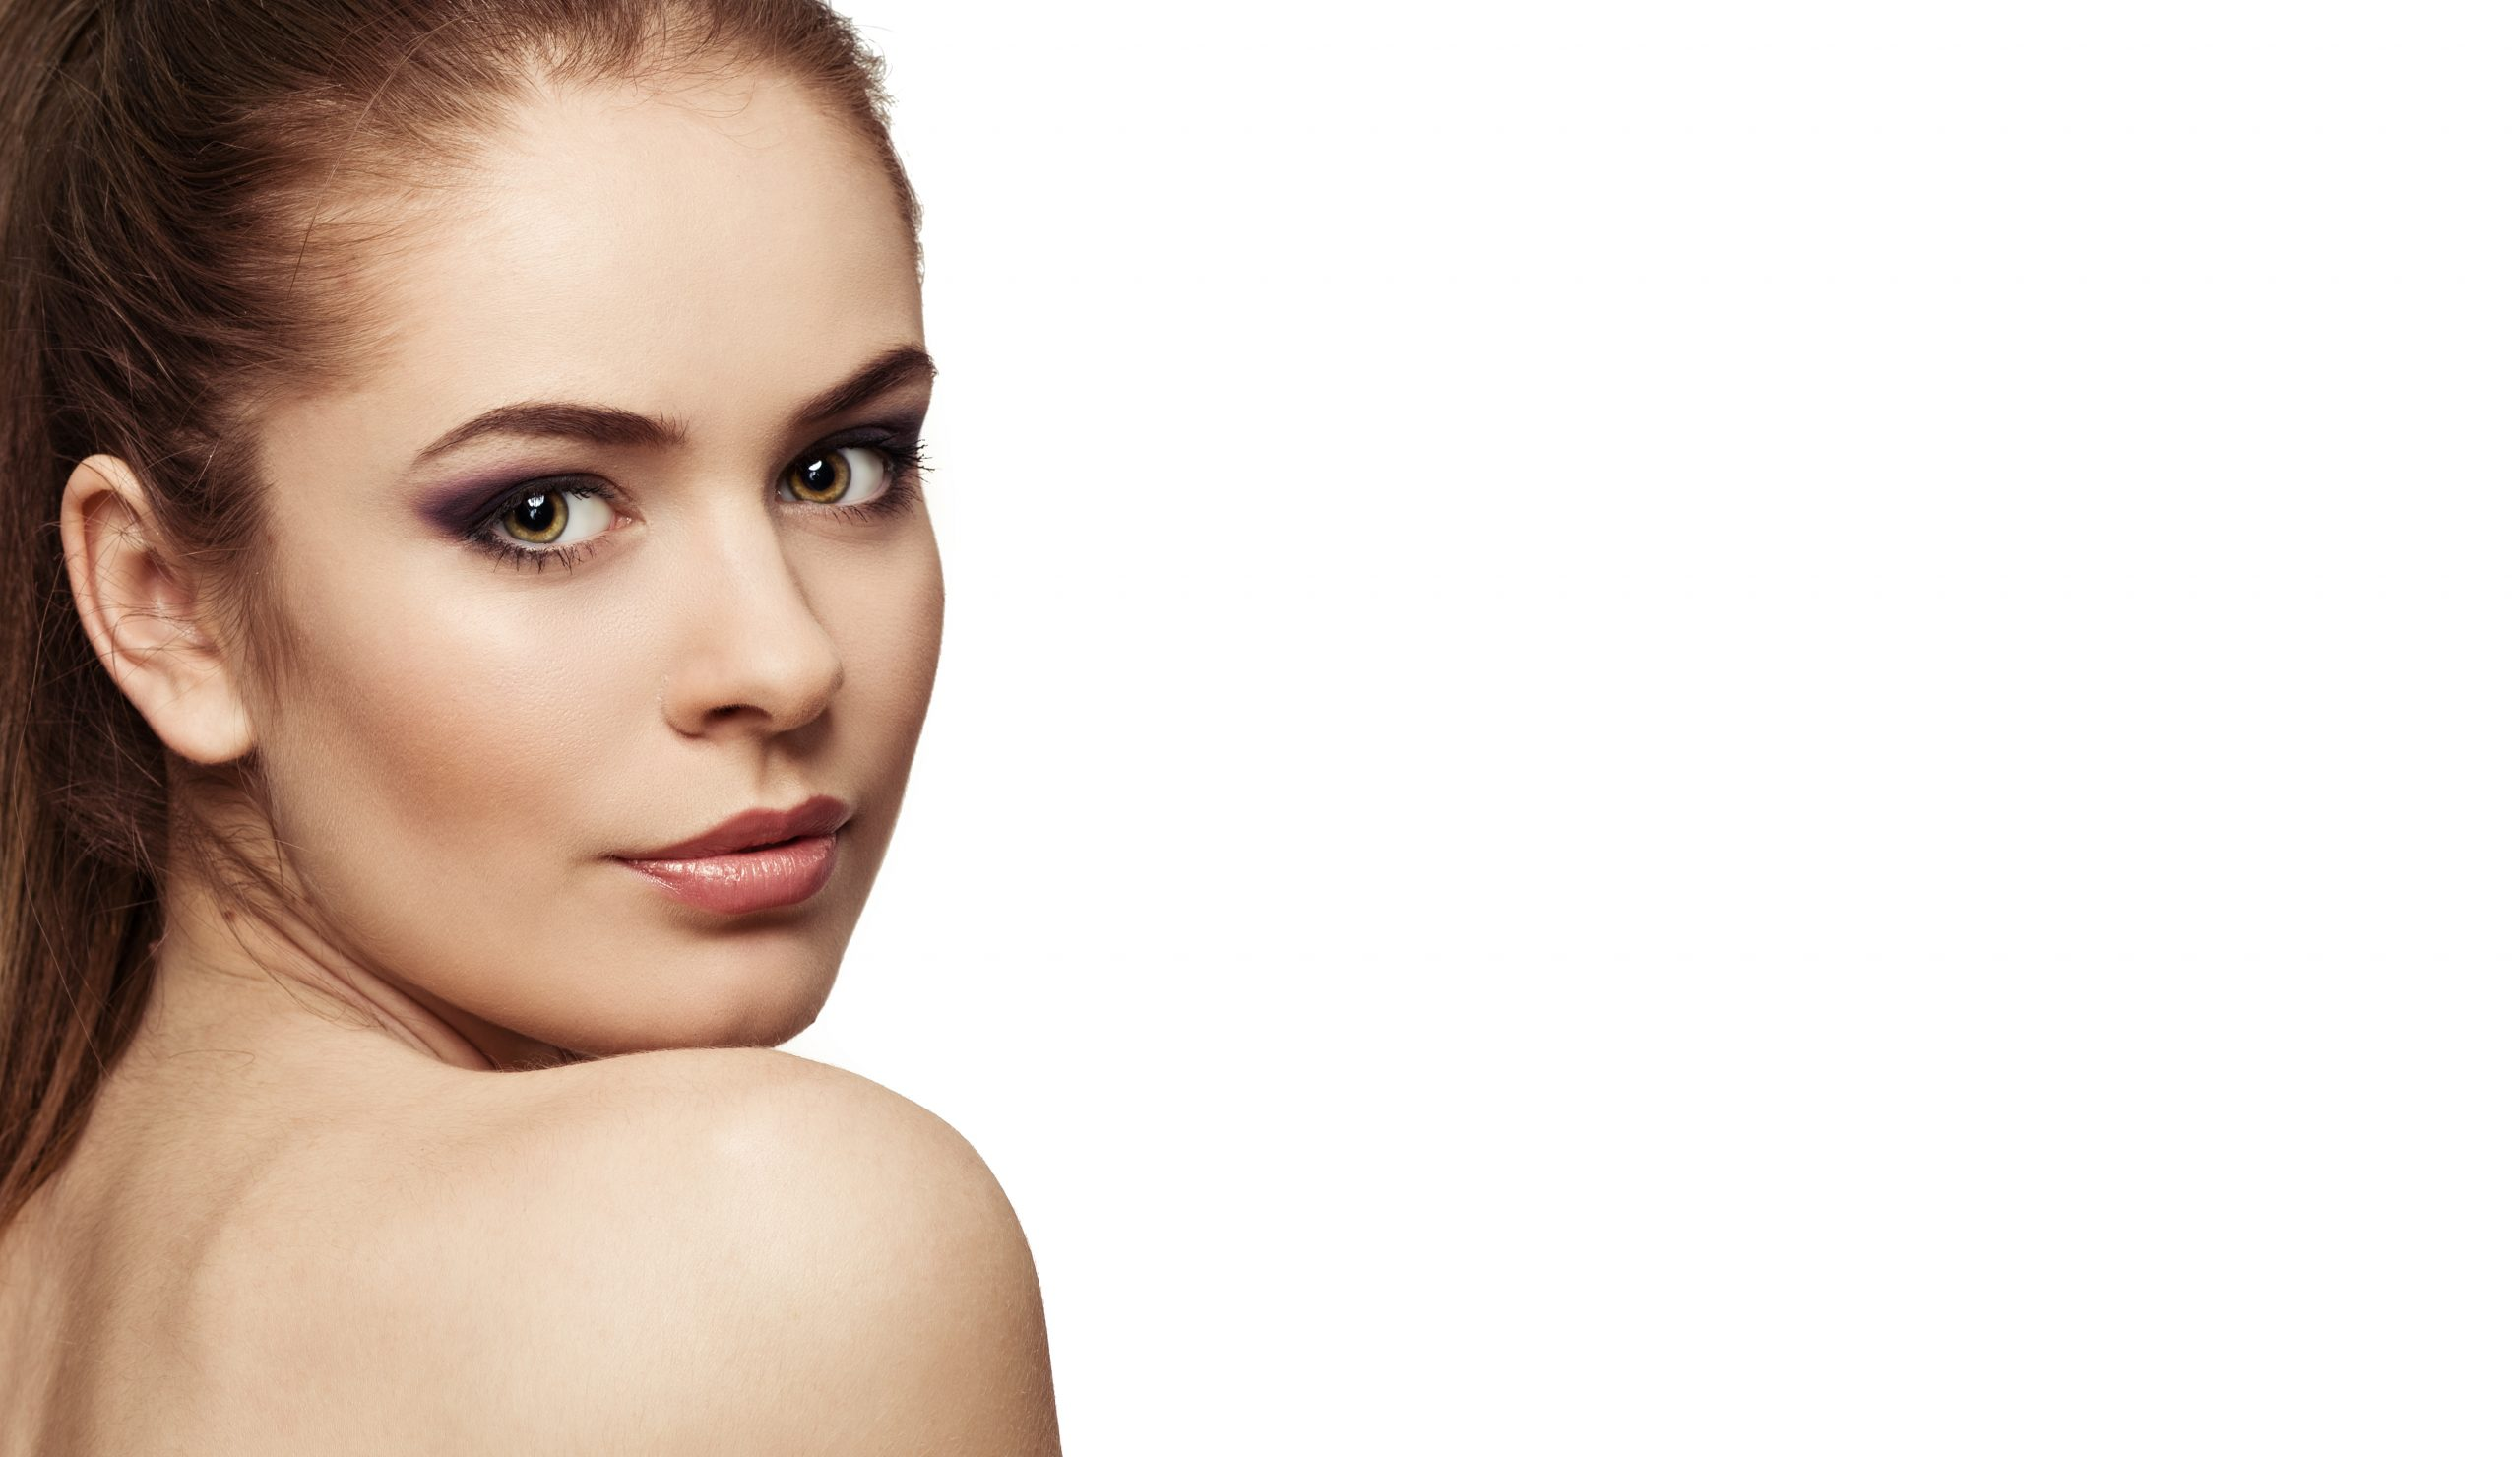 Skin Brightening For A Problematic Skin Tones